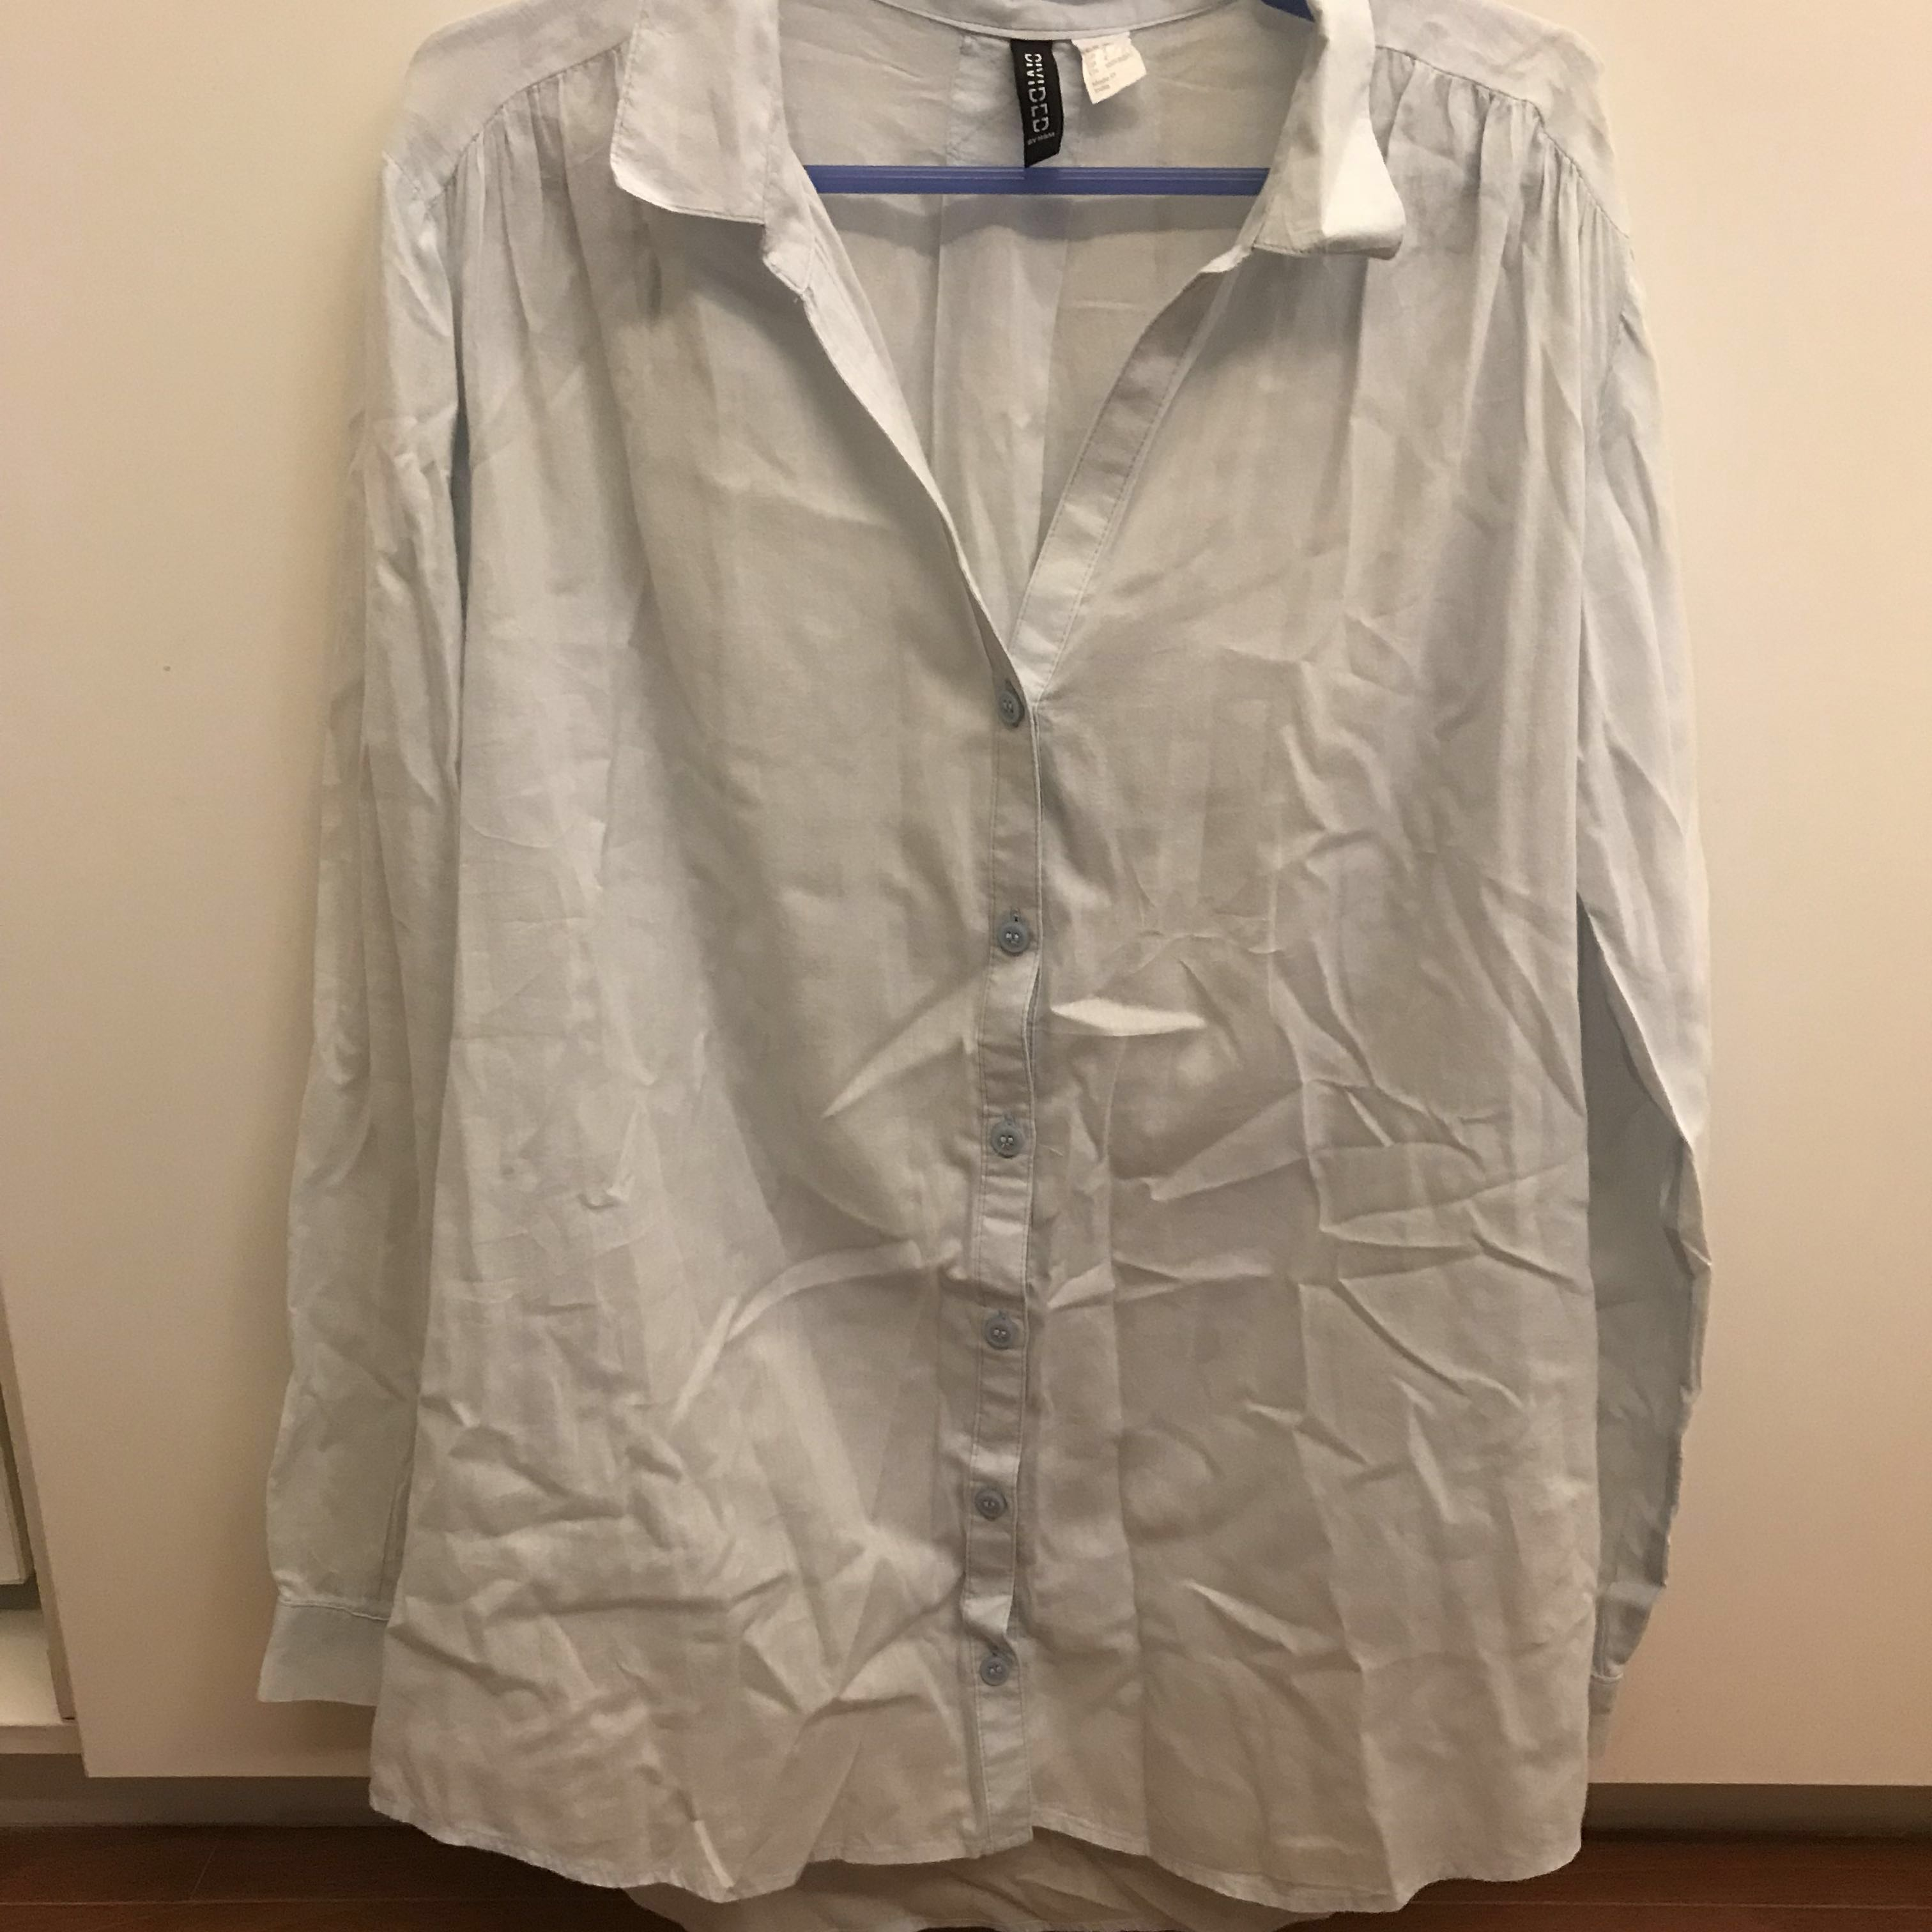 H&M light blue long sleeved button down oversized top